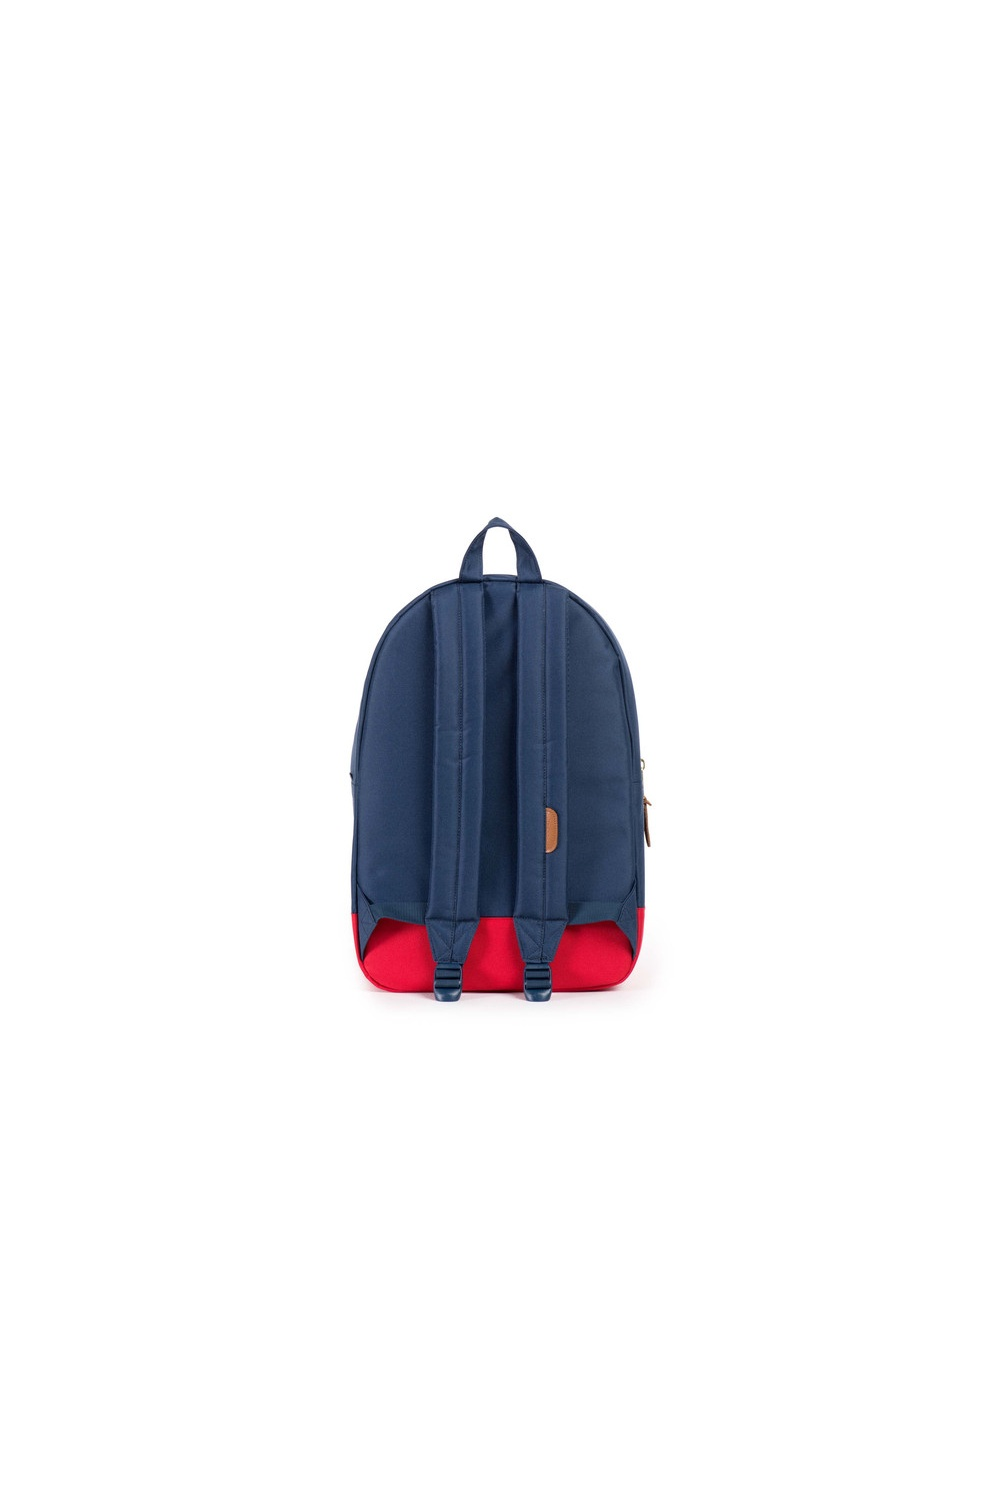 4ba69add74fb Herschel Supply Co Settlement Backpack (Navy Red) - Accessories from ...